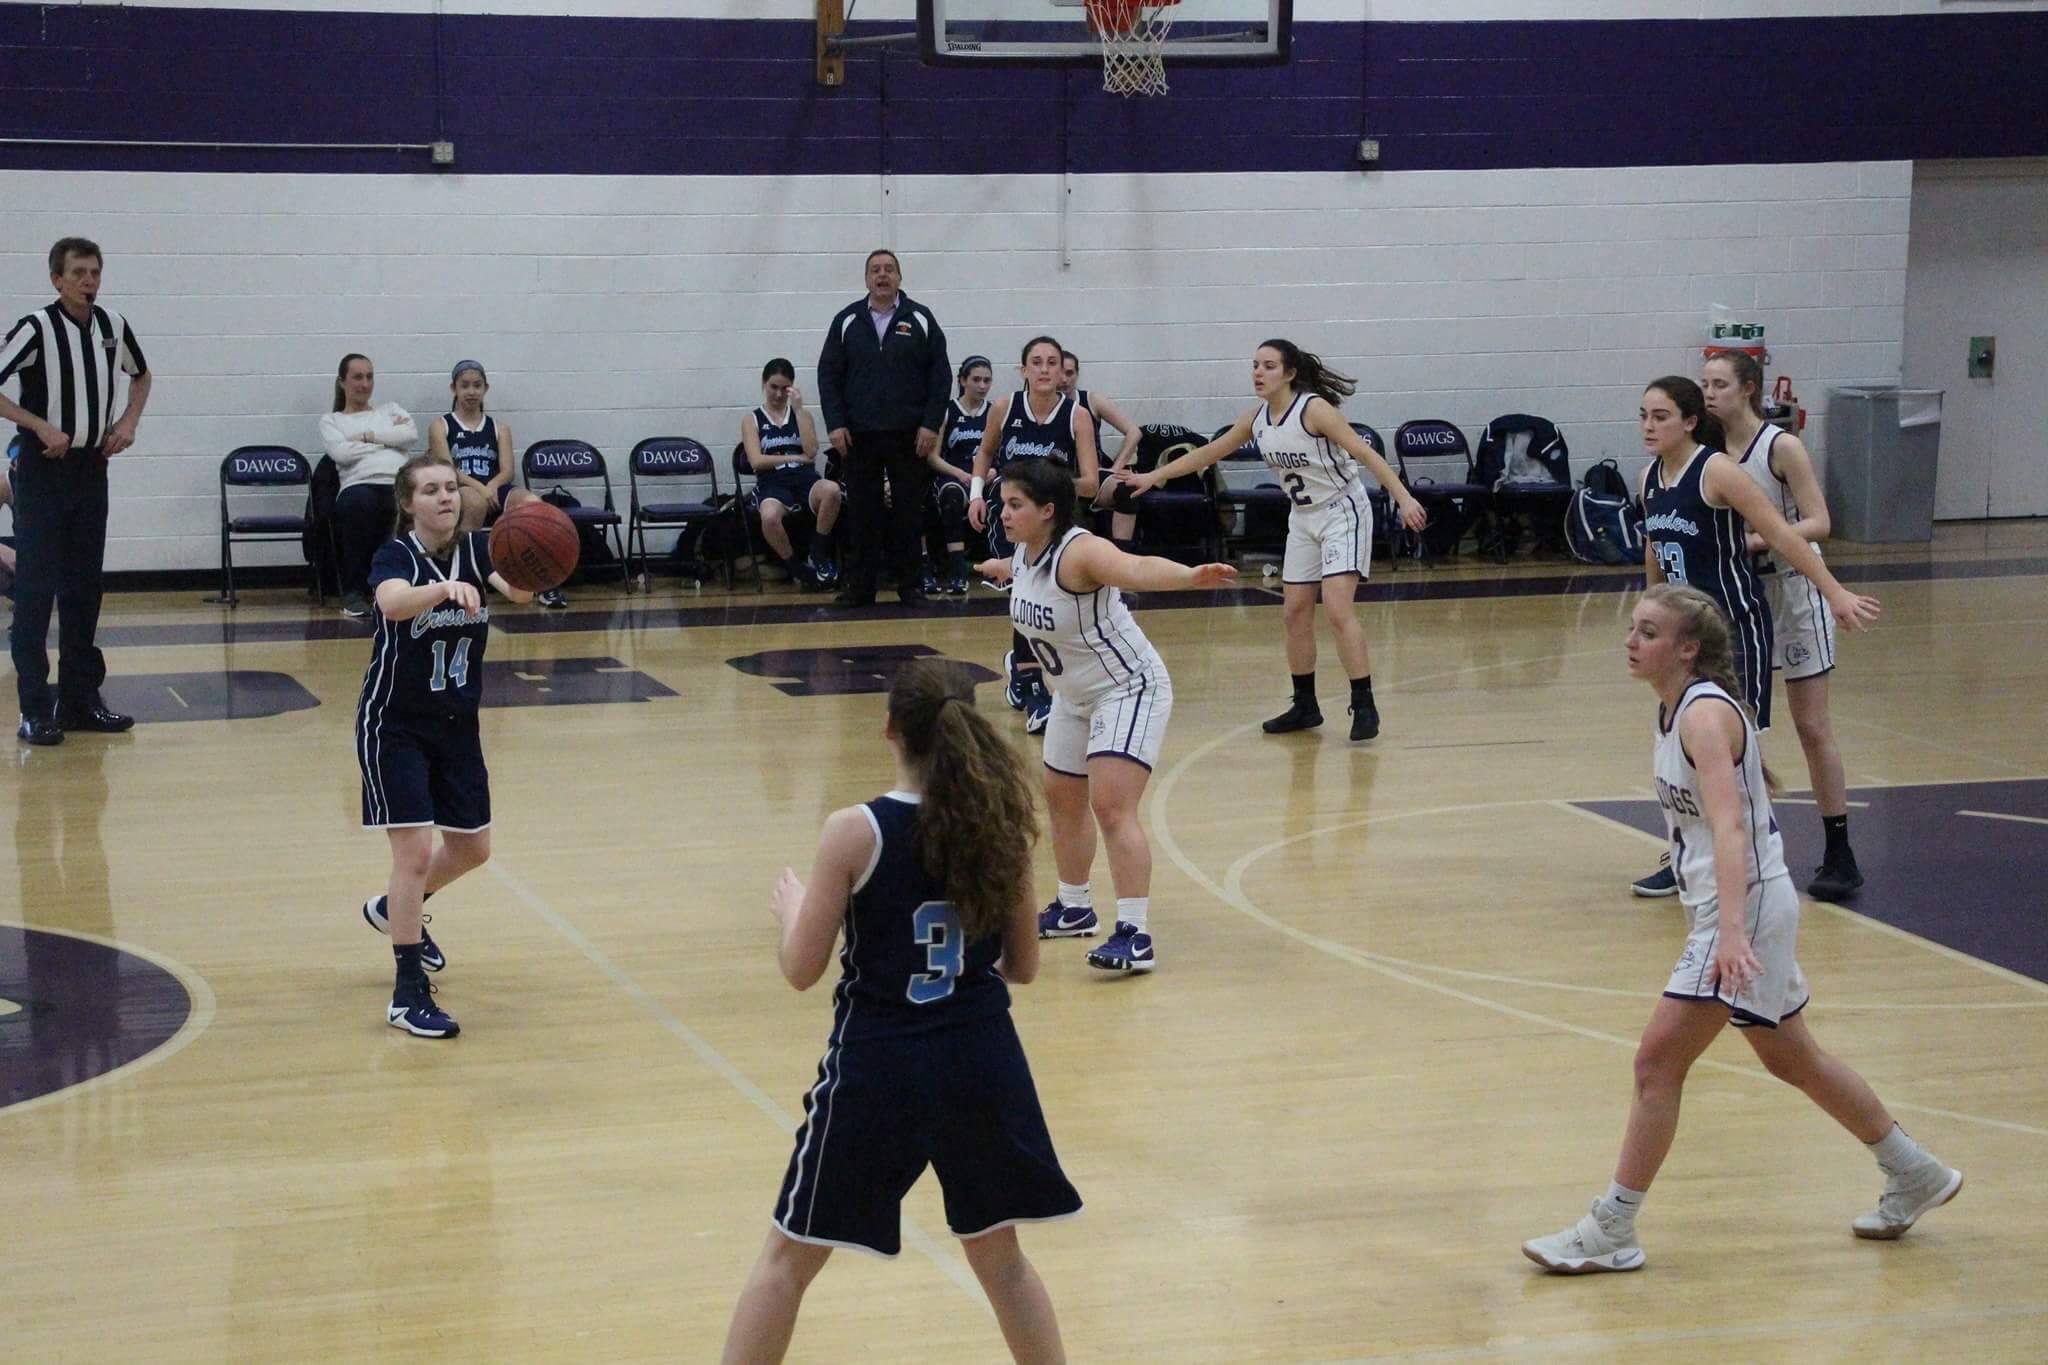 e41f849b108fdc0e1749_ALJ-Rumson_FH_NJSIAA_Central__Group_2_First_Round_Girls_Varsity_Basketball__4.JPG